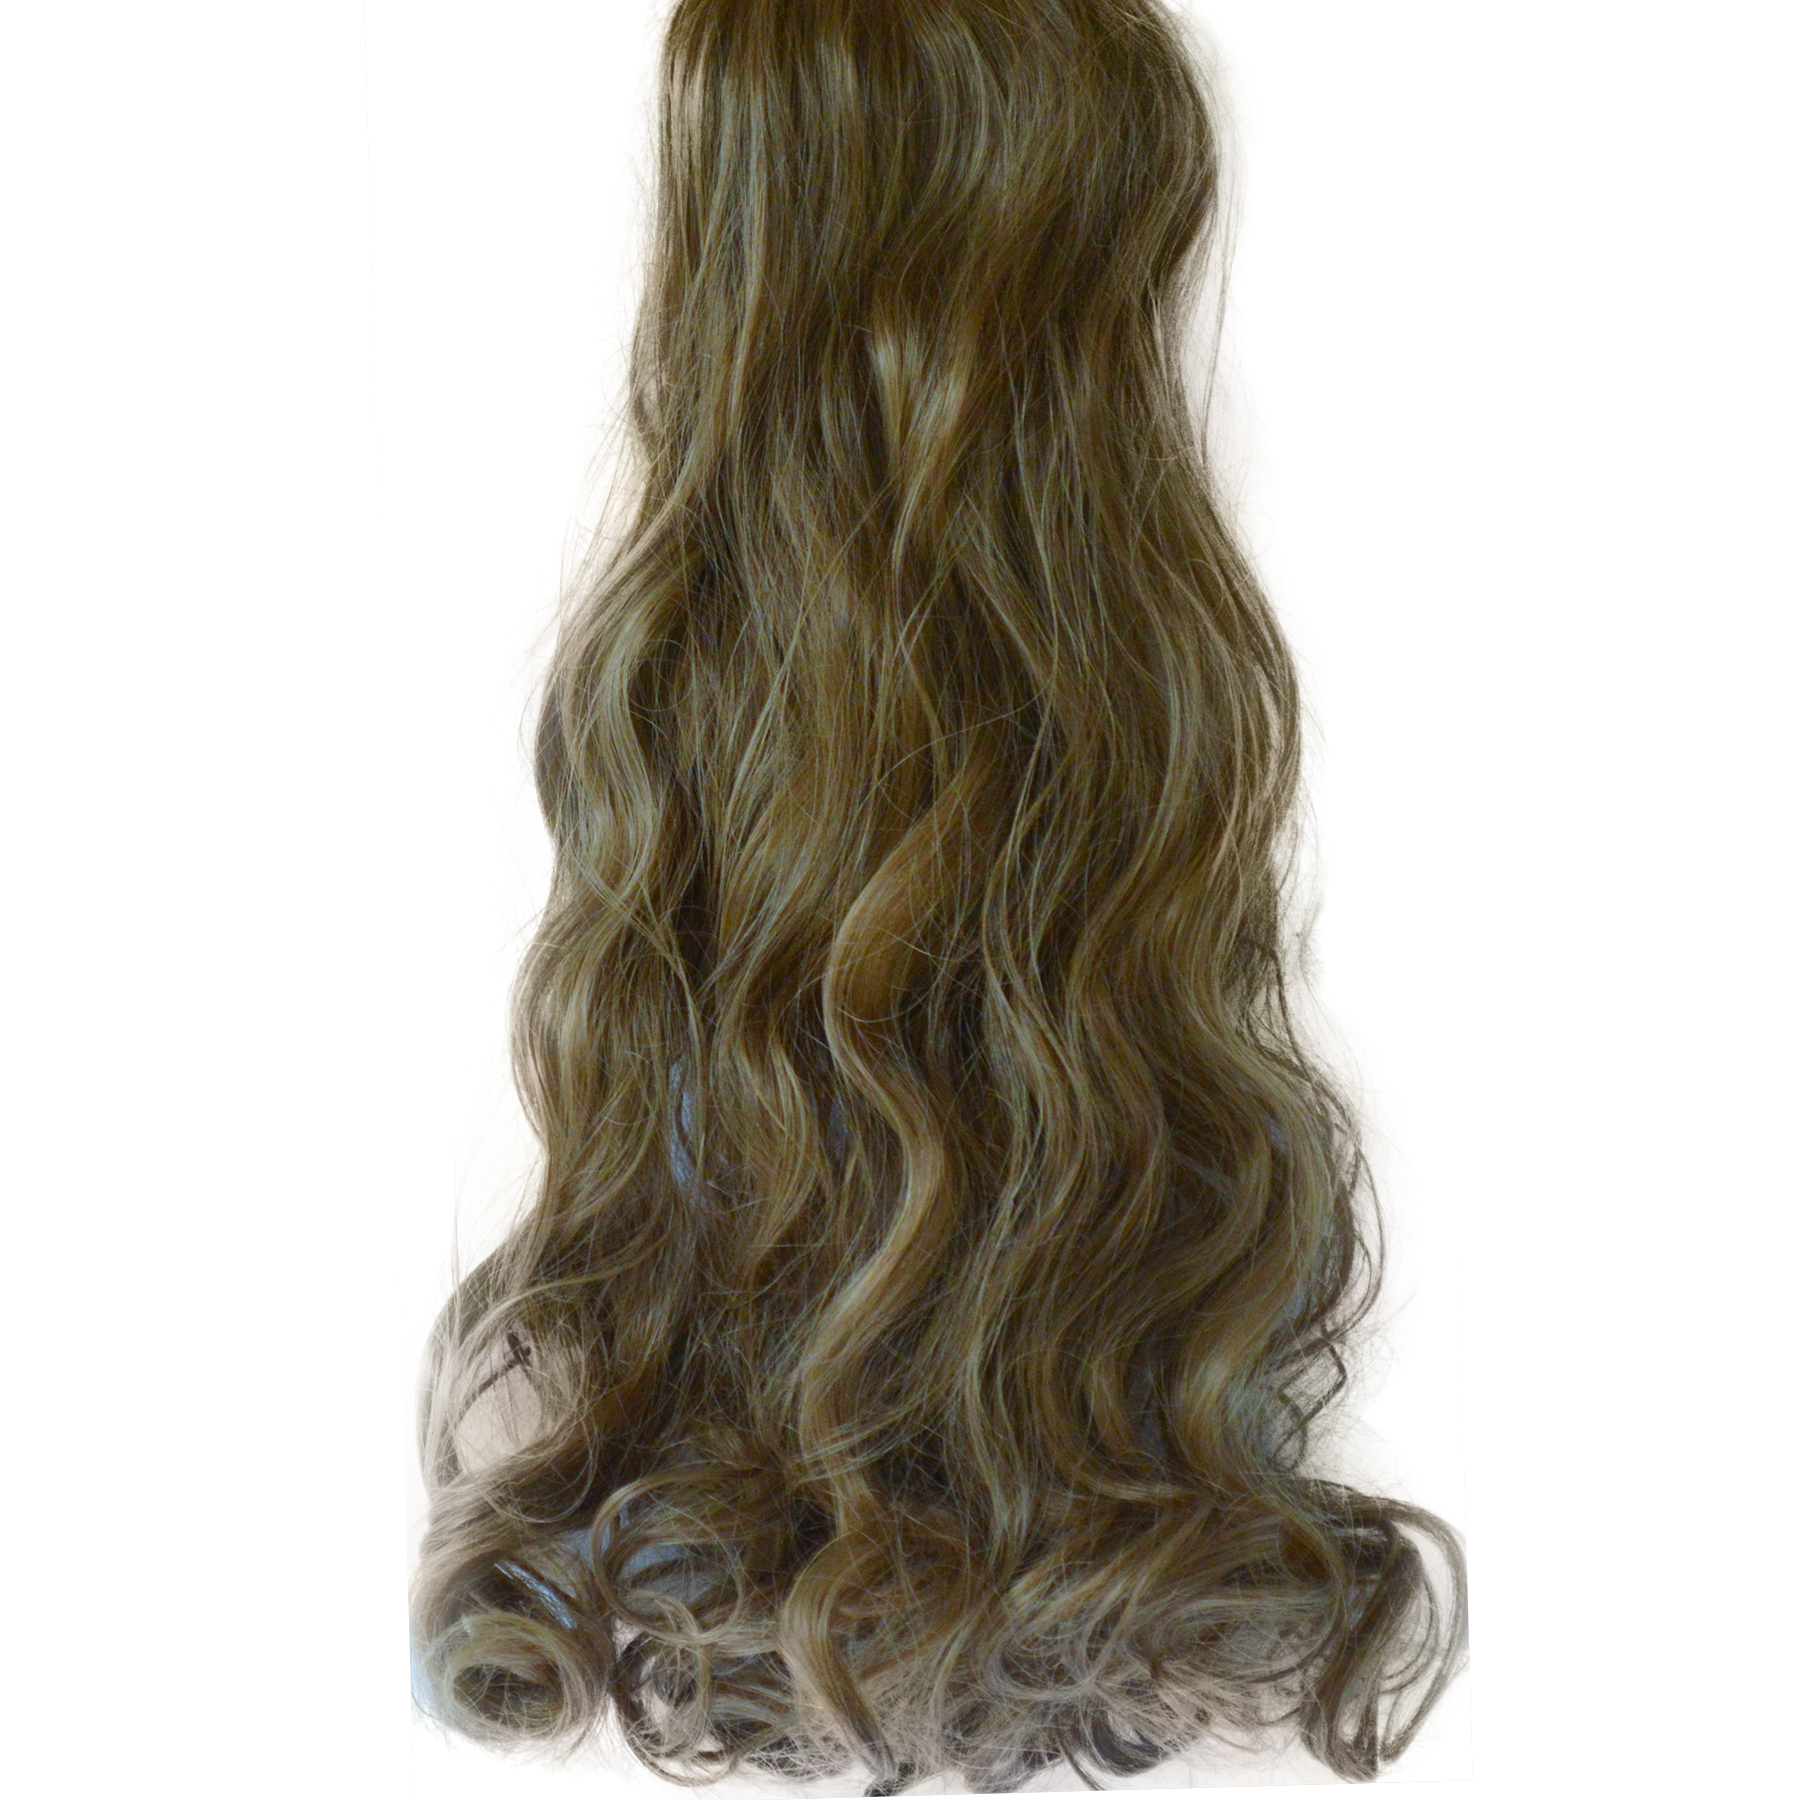 20 22 Quot Clip In Hair Extensions Curly Light Brown 12 Full